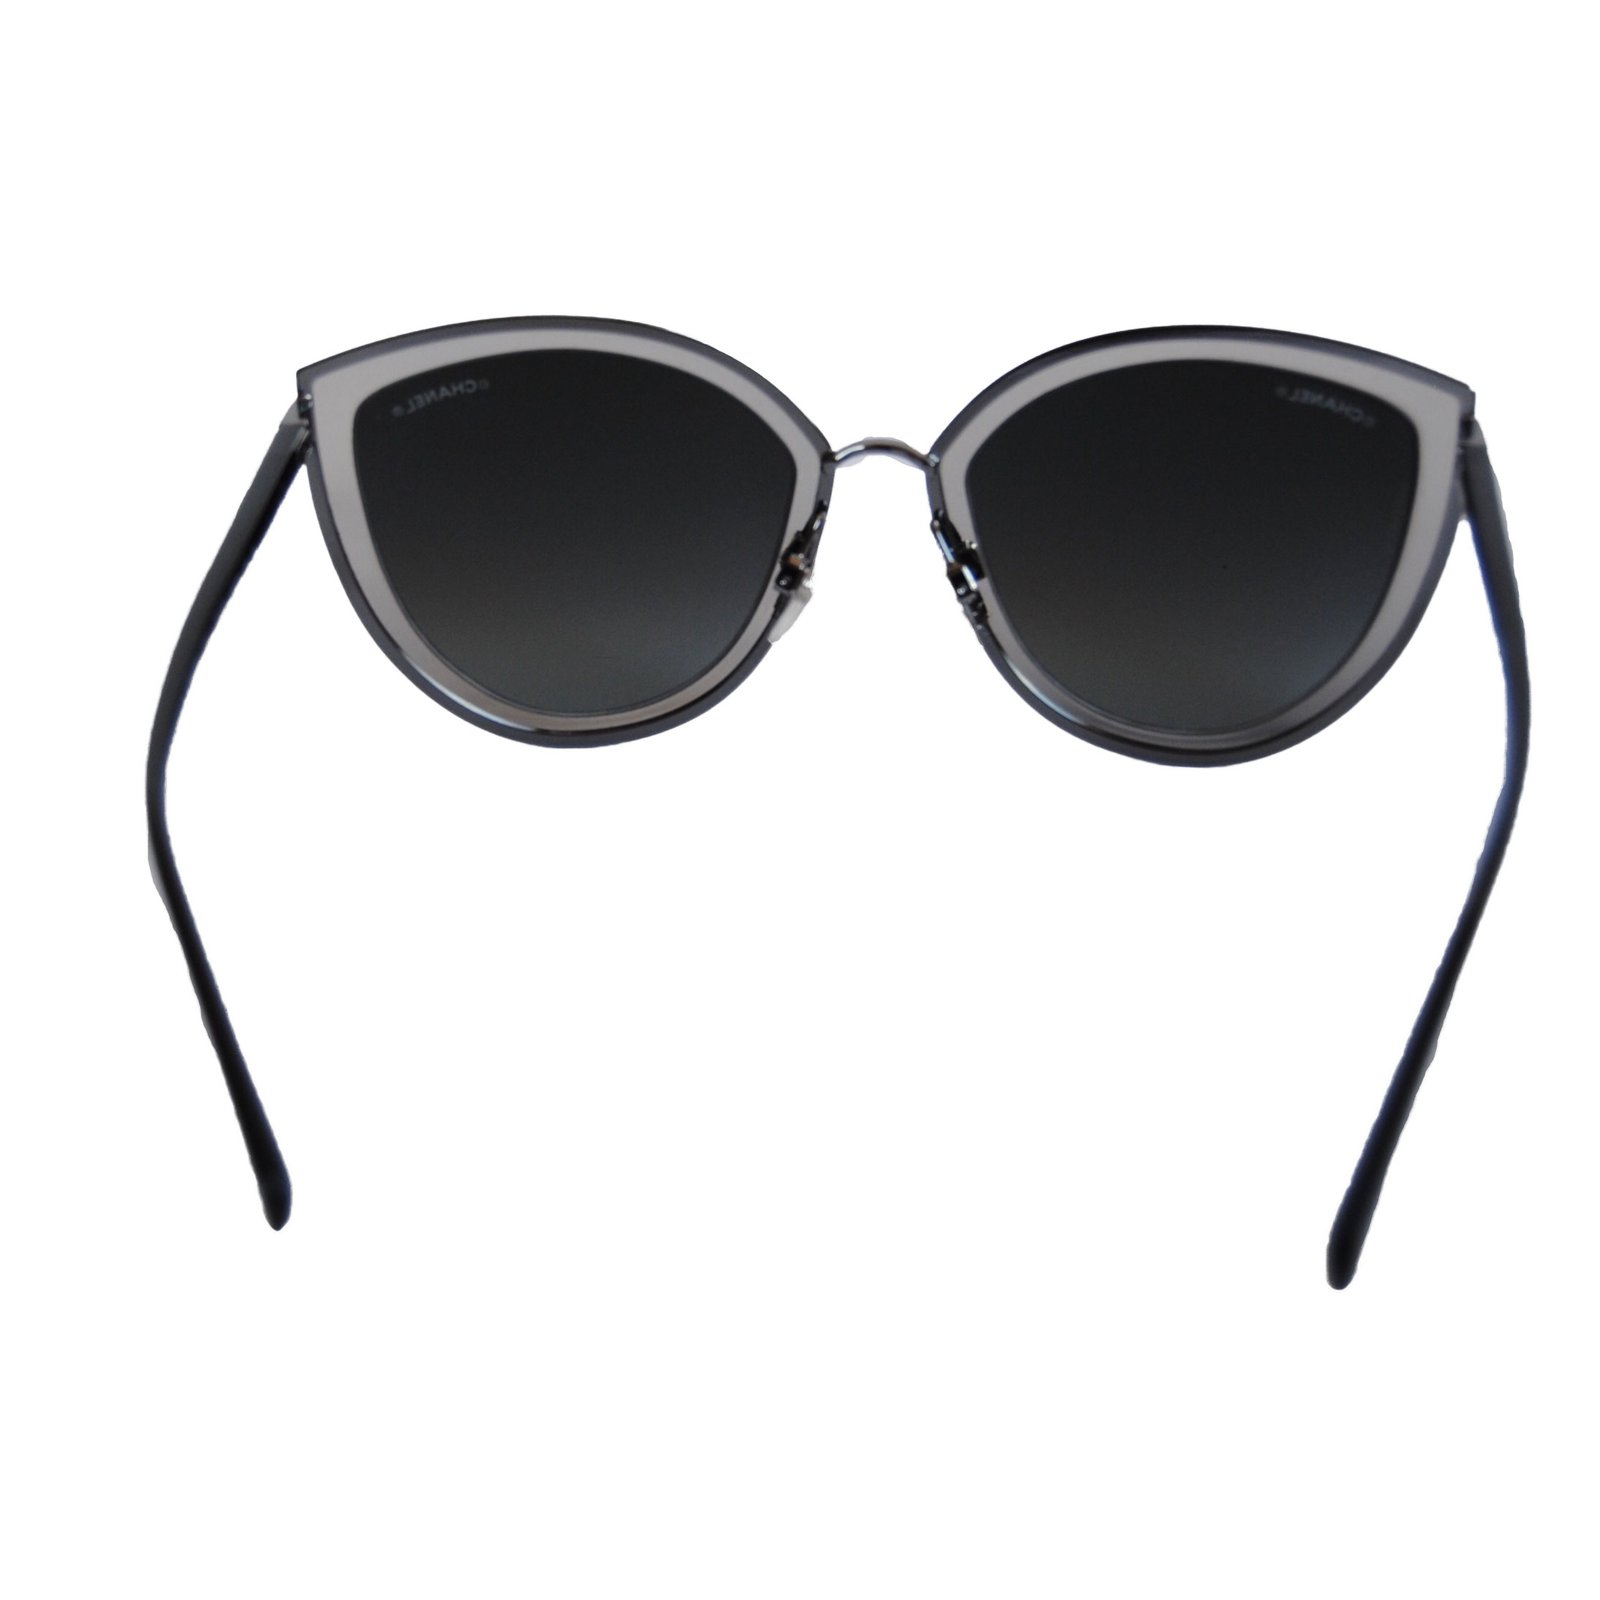 6473054bad Chanel Summer cat eye sunglasses Sunglasses Metal Silvery ref.41125 - Joli  Closet